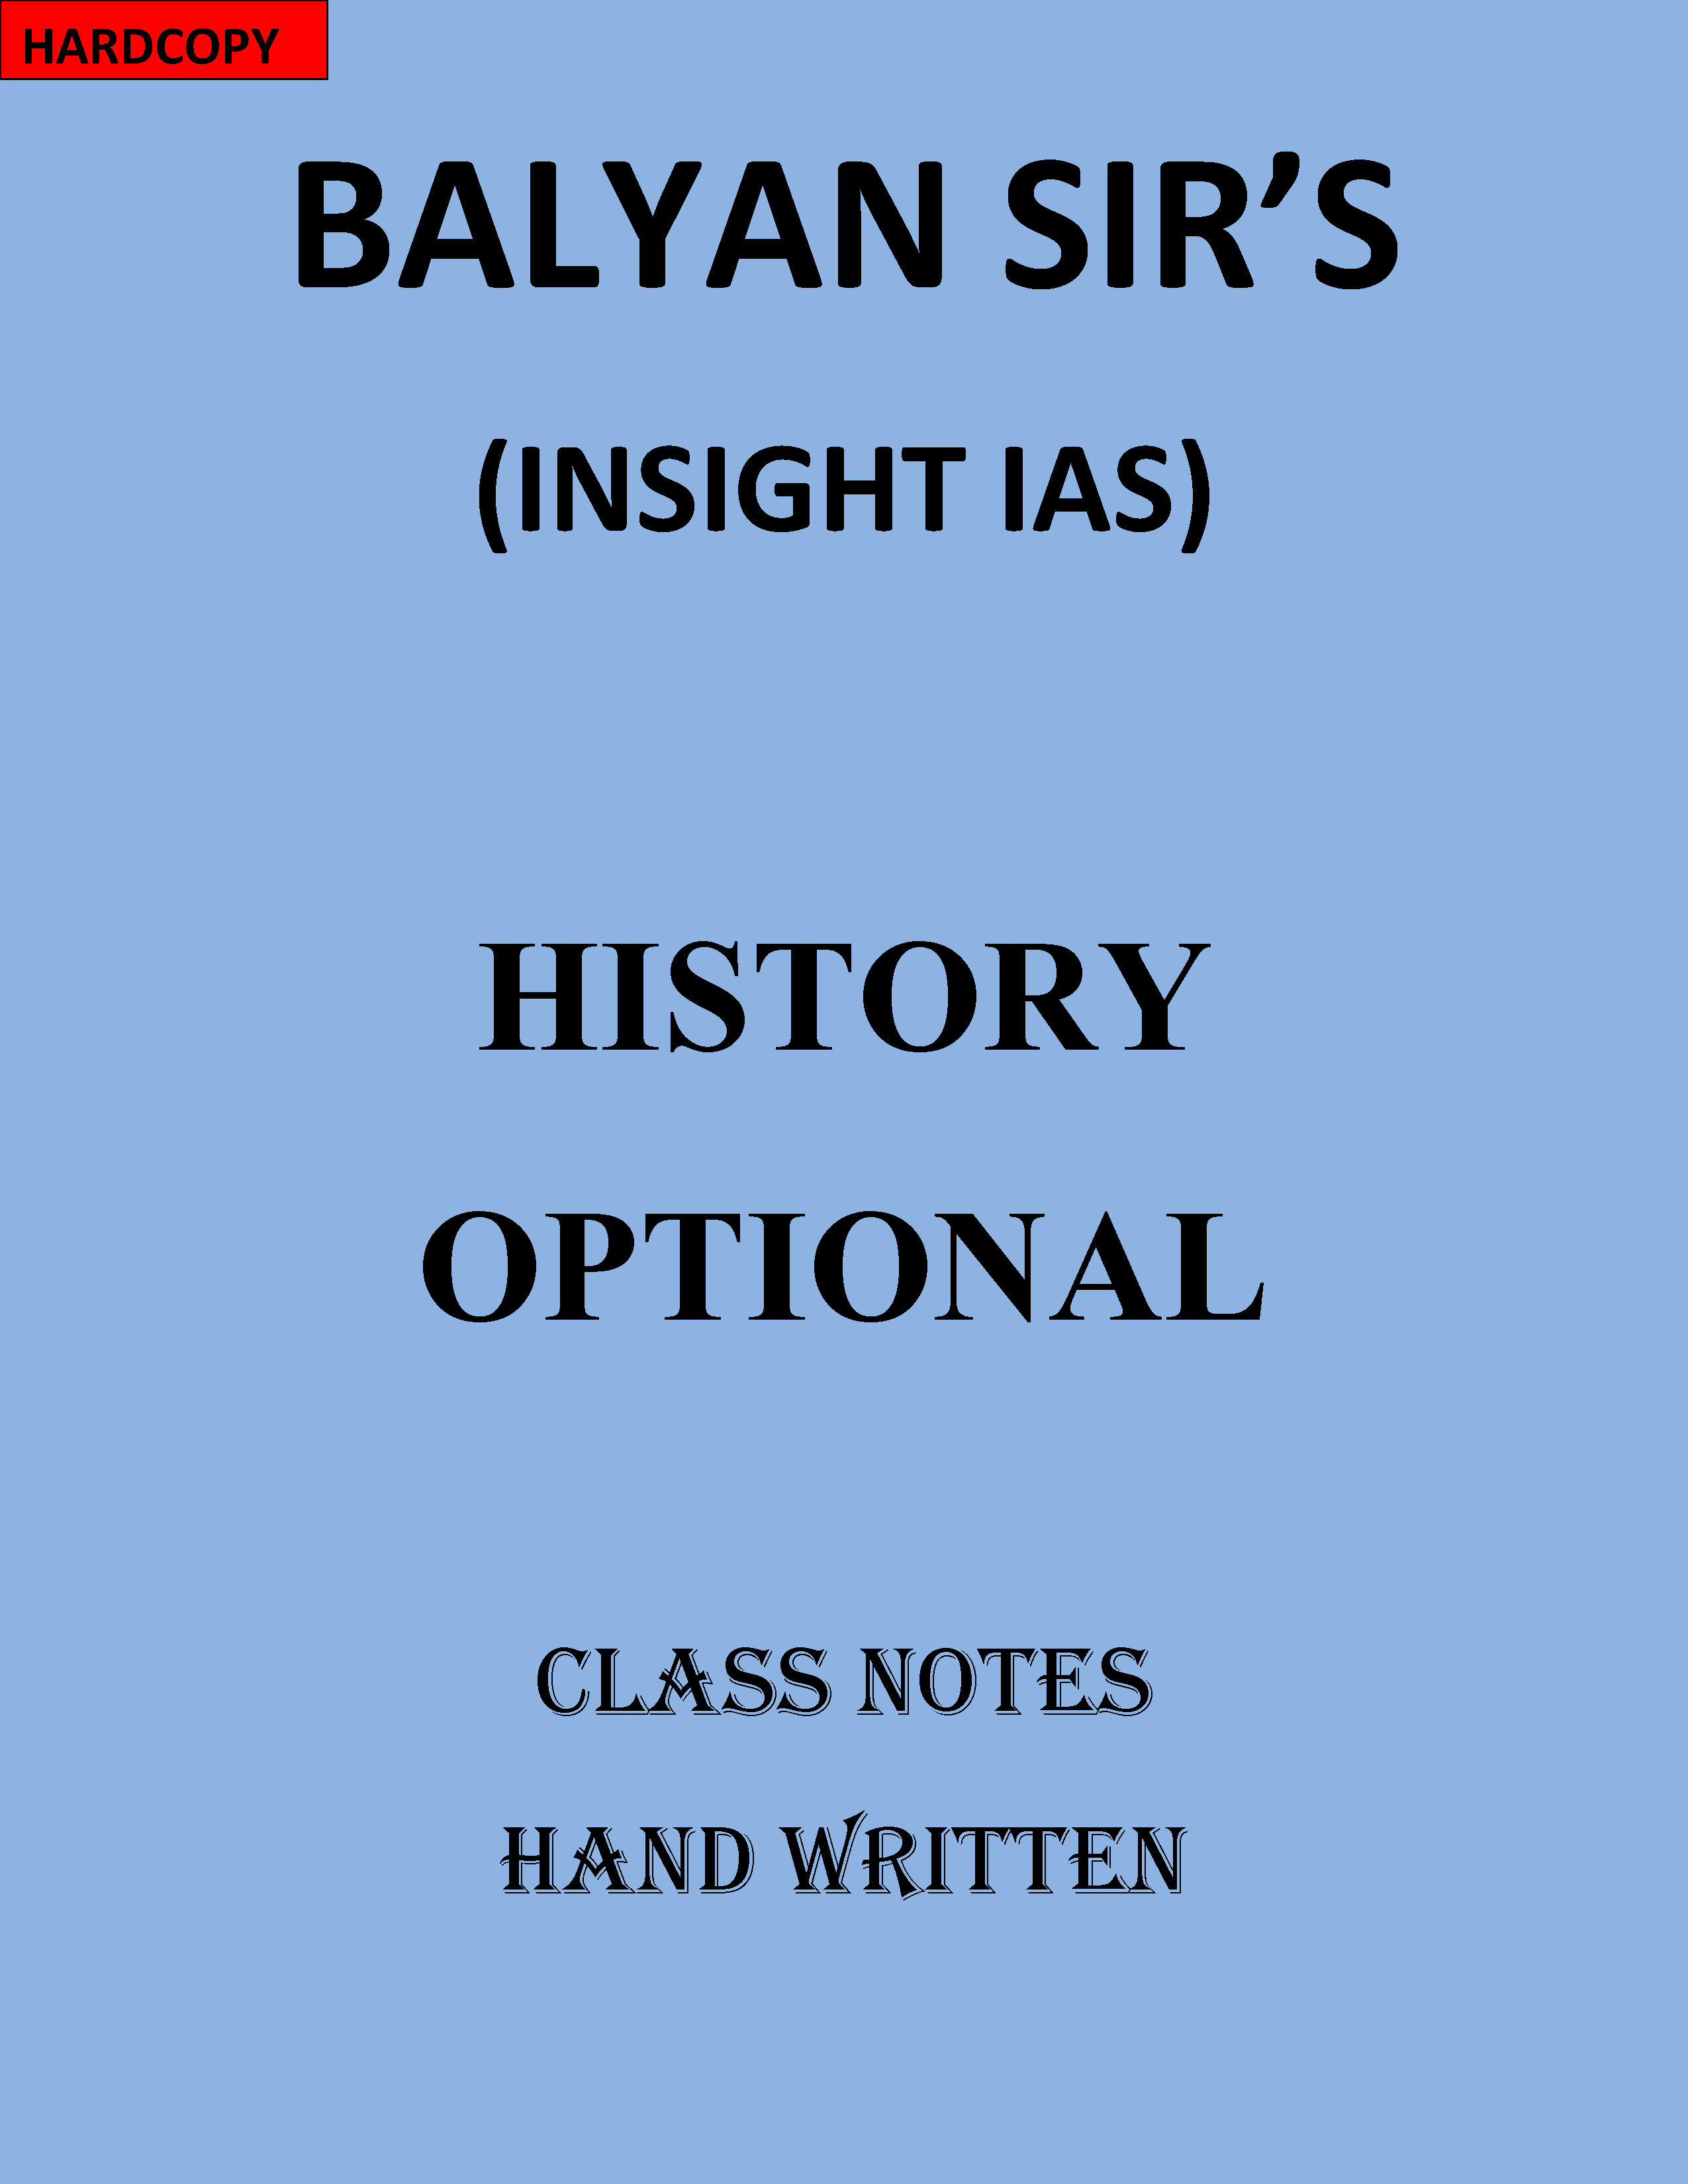 BALYAN SIR INSIGHT HISTORY OPTIONAL FULL CLASS NOTE